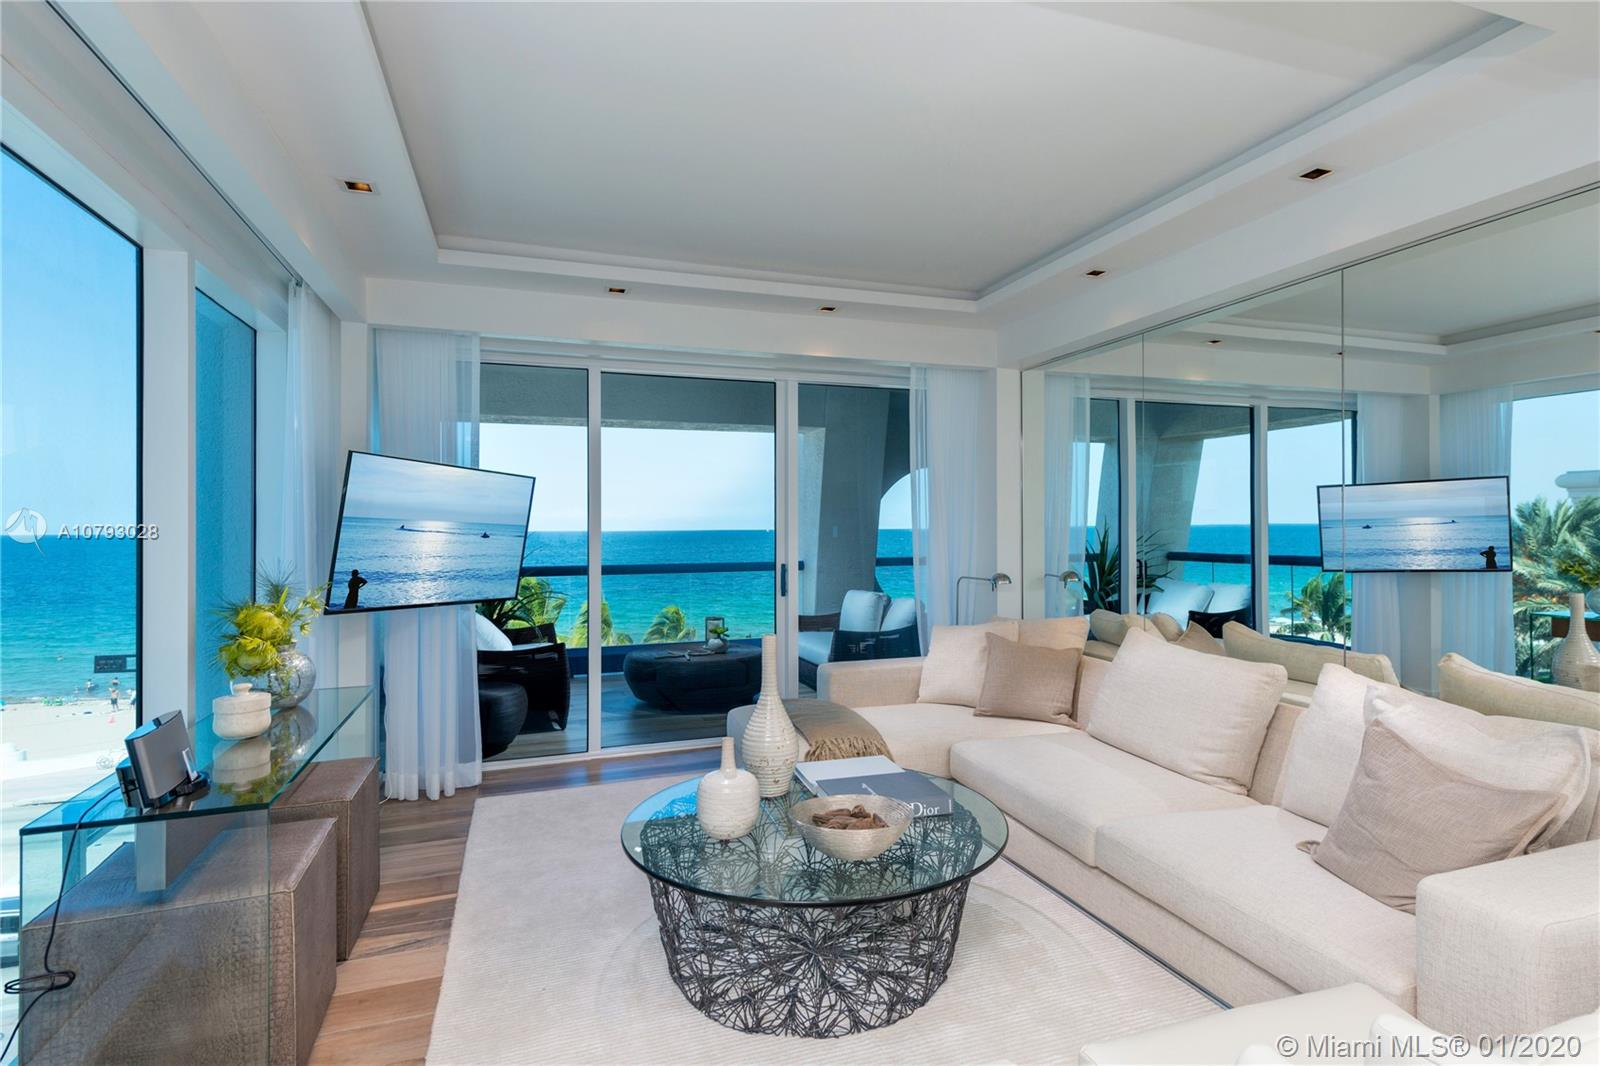 Watch the waves crash from this one of a kind, Beachfront Villa at The Ocean Resort Residences! One of only 20 residences located a stone's throw from the sand. This 2/2 corner unit features Sub Zero & Wolf and Bosch appliances. Beautiful porcelain tile & marble floors finish the unit, with two extra large outdoor terraces. Owners will receive all services & amenities of the Conrad, including laundry service, twice a day cleaning, beach service, car service & Hilton Gold Membership. New Construction, now open, close immediately.